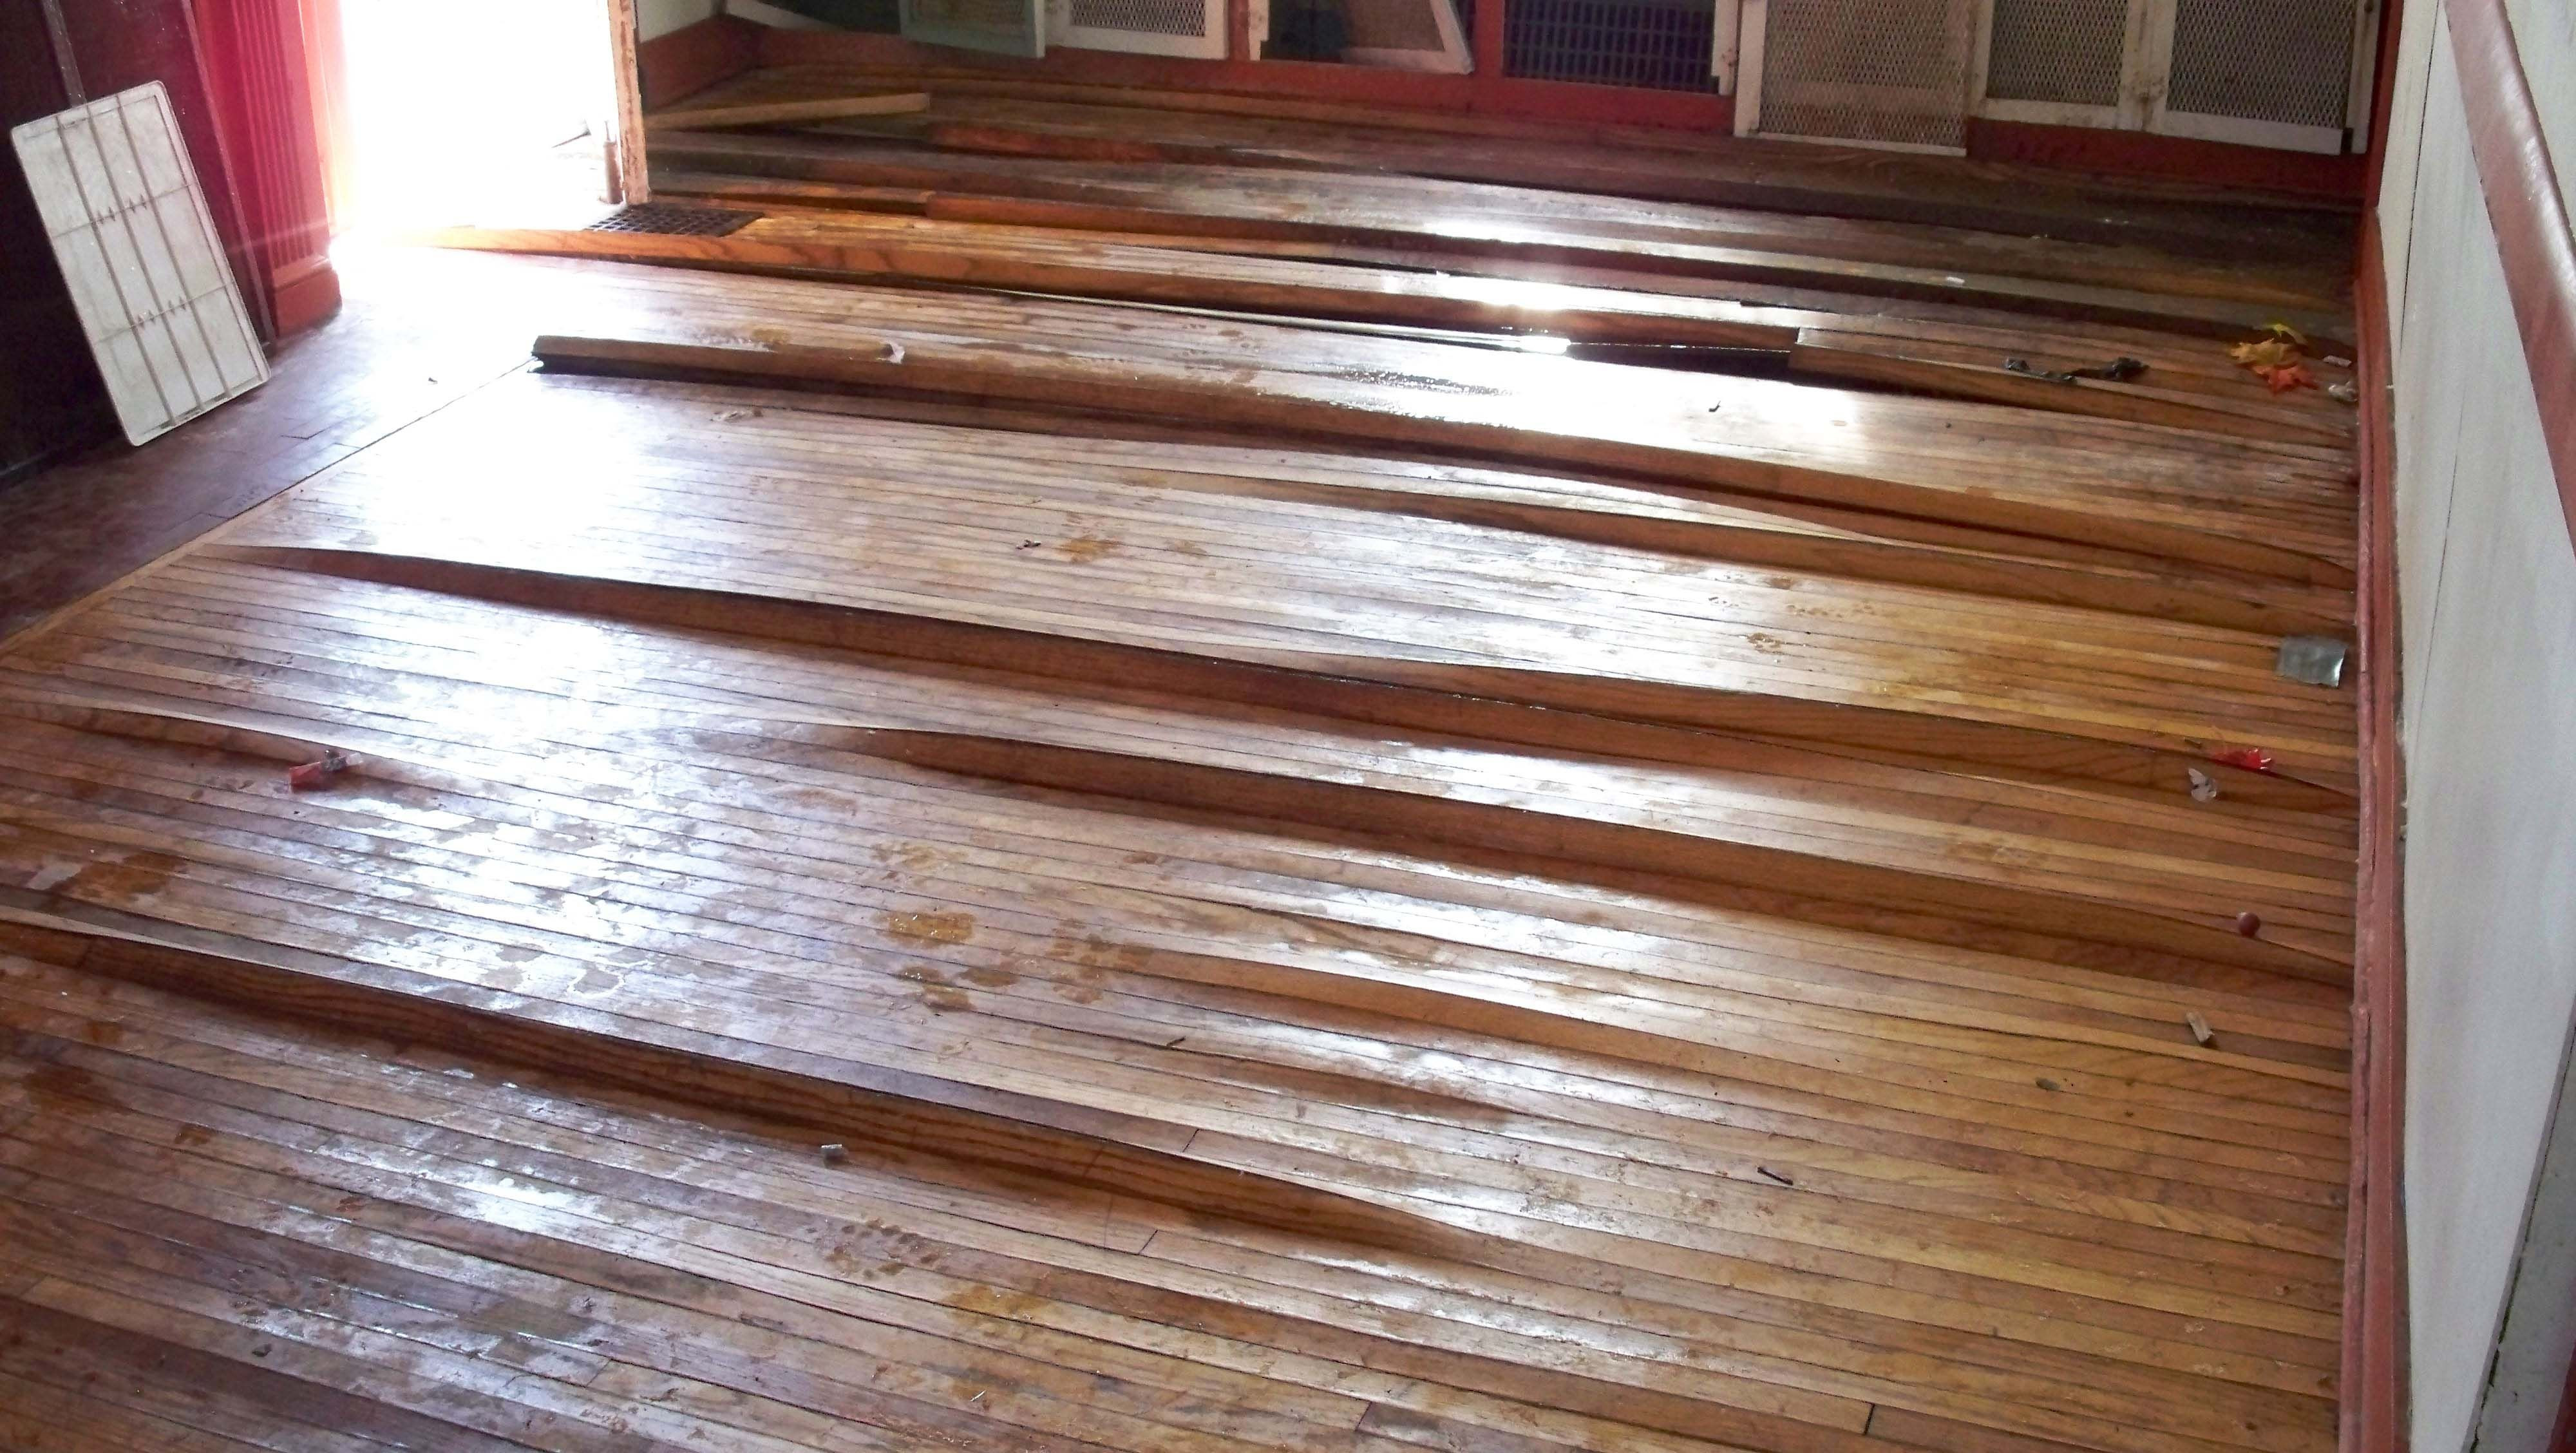 Refinishing Bamboo Vs Hardwood Flooring Of Bamboo Vs Hardwood Flooring Floor Regarding Bamboo Vs Hardwood Flooring Hardwood Floor Water Damage Warping Hardwood Floors